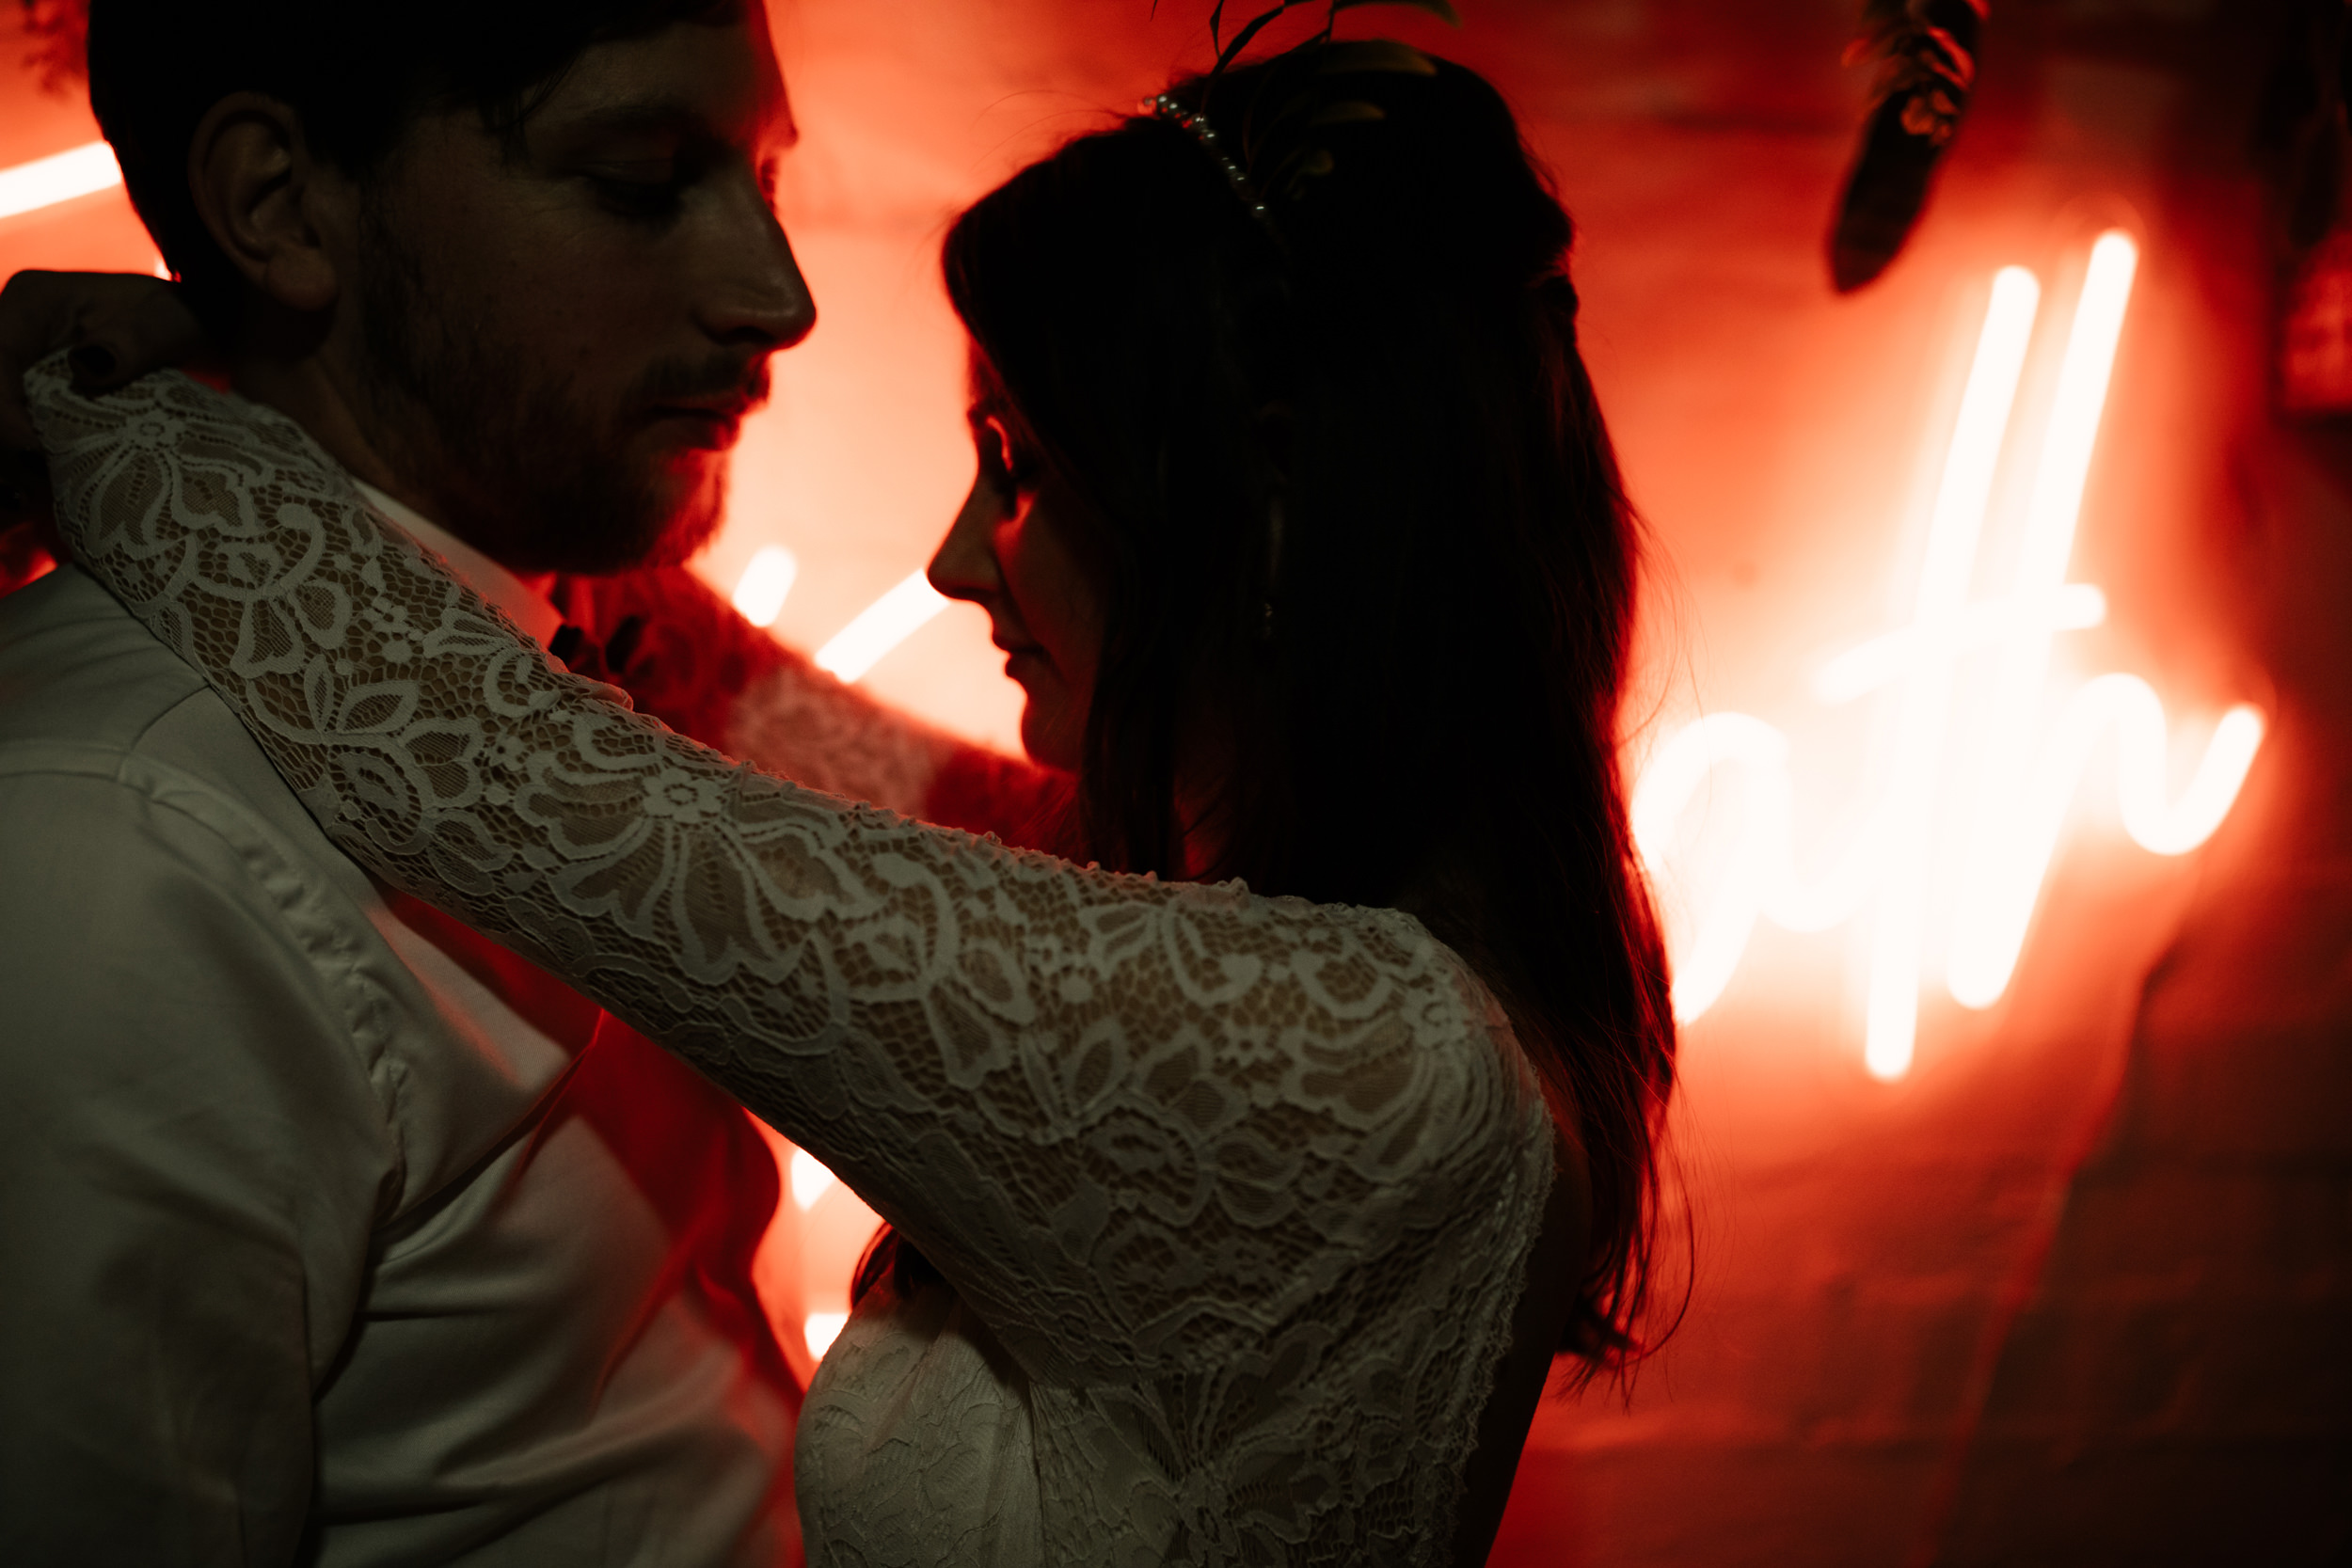 I_Got_You_Babe_Weddings_Emily_Matt_Rupert_Glasshaus_Melbourne0223.JPG